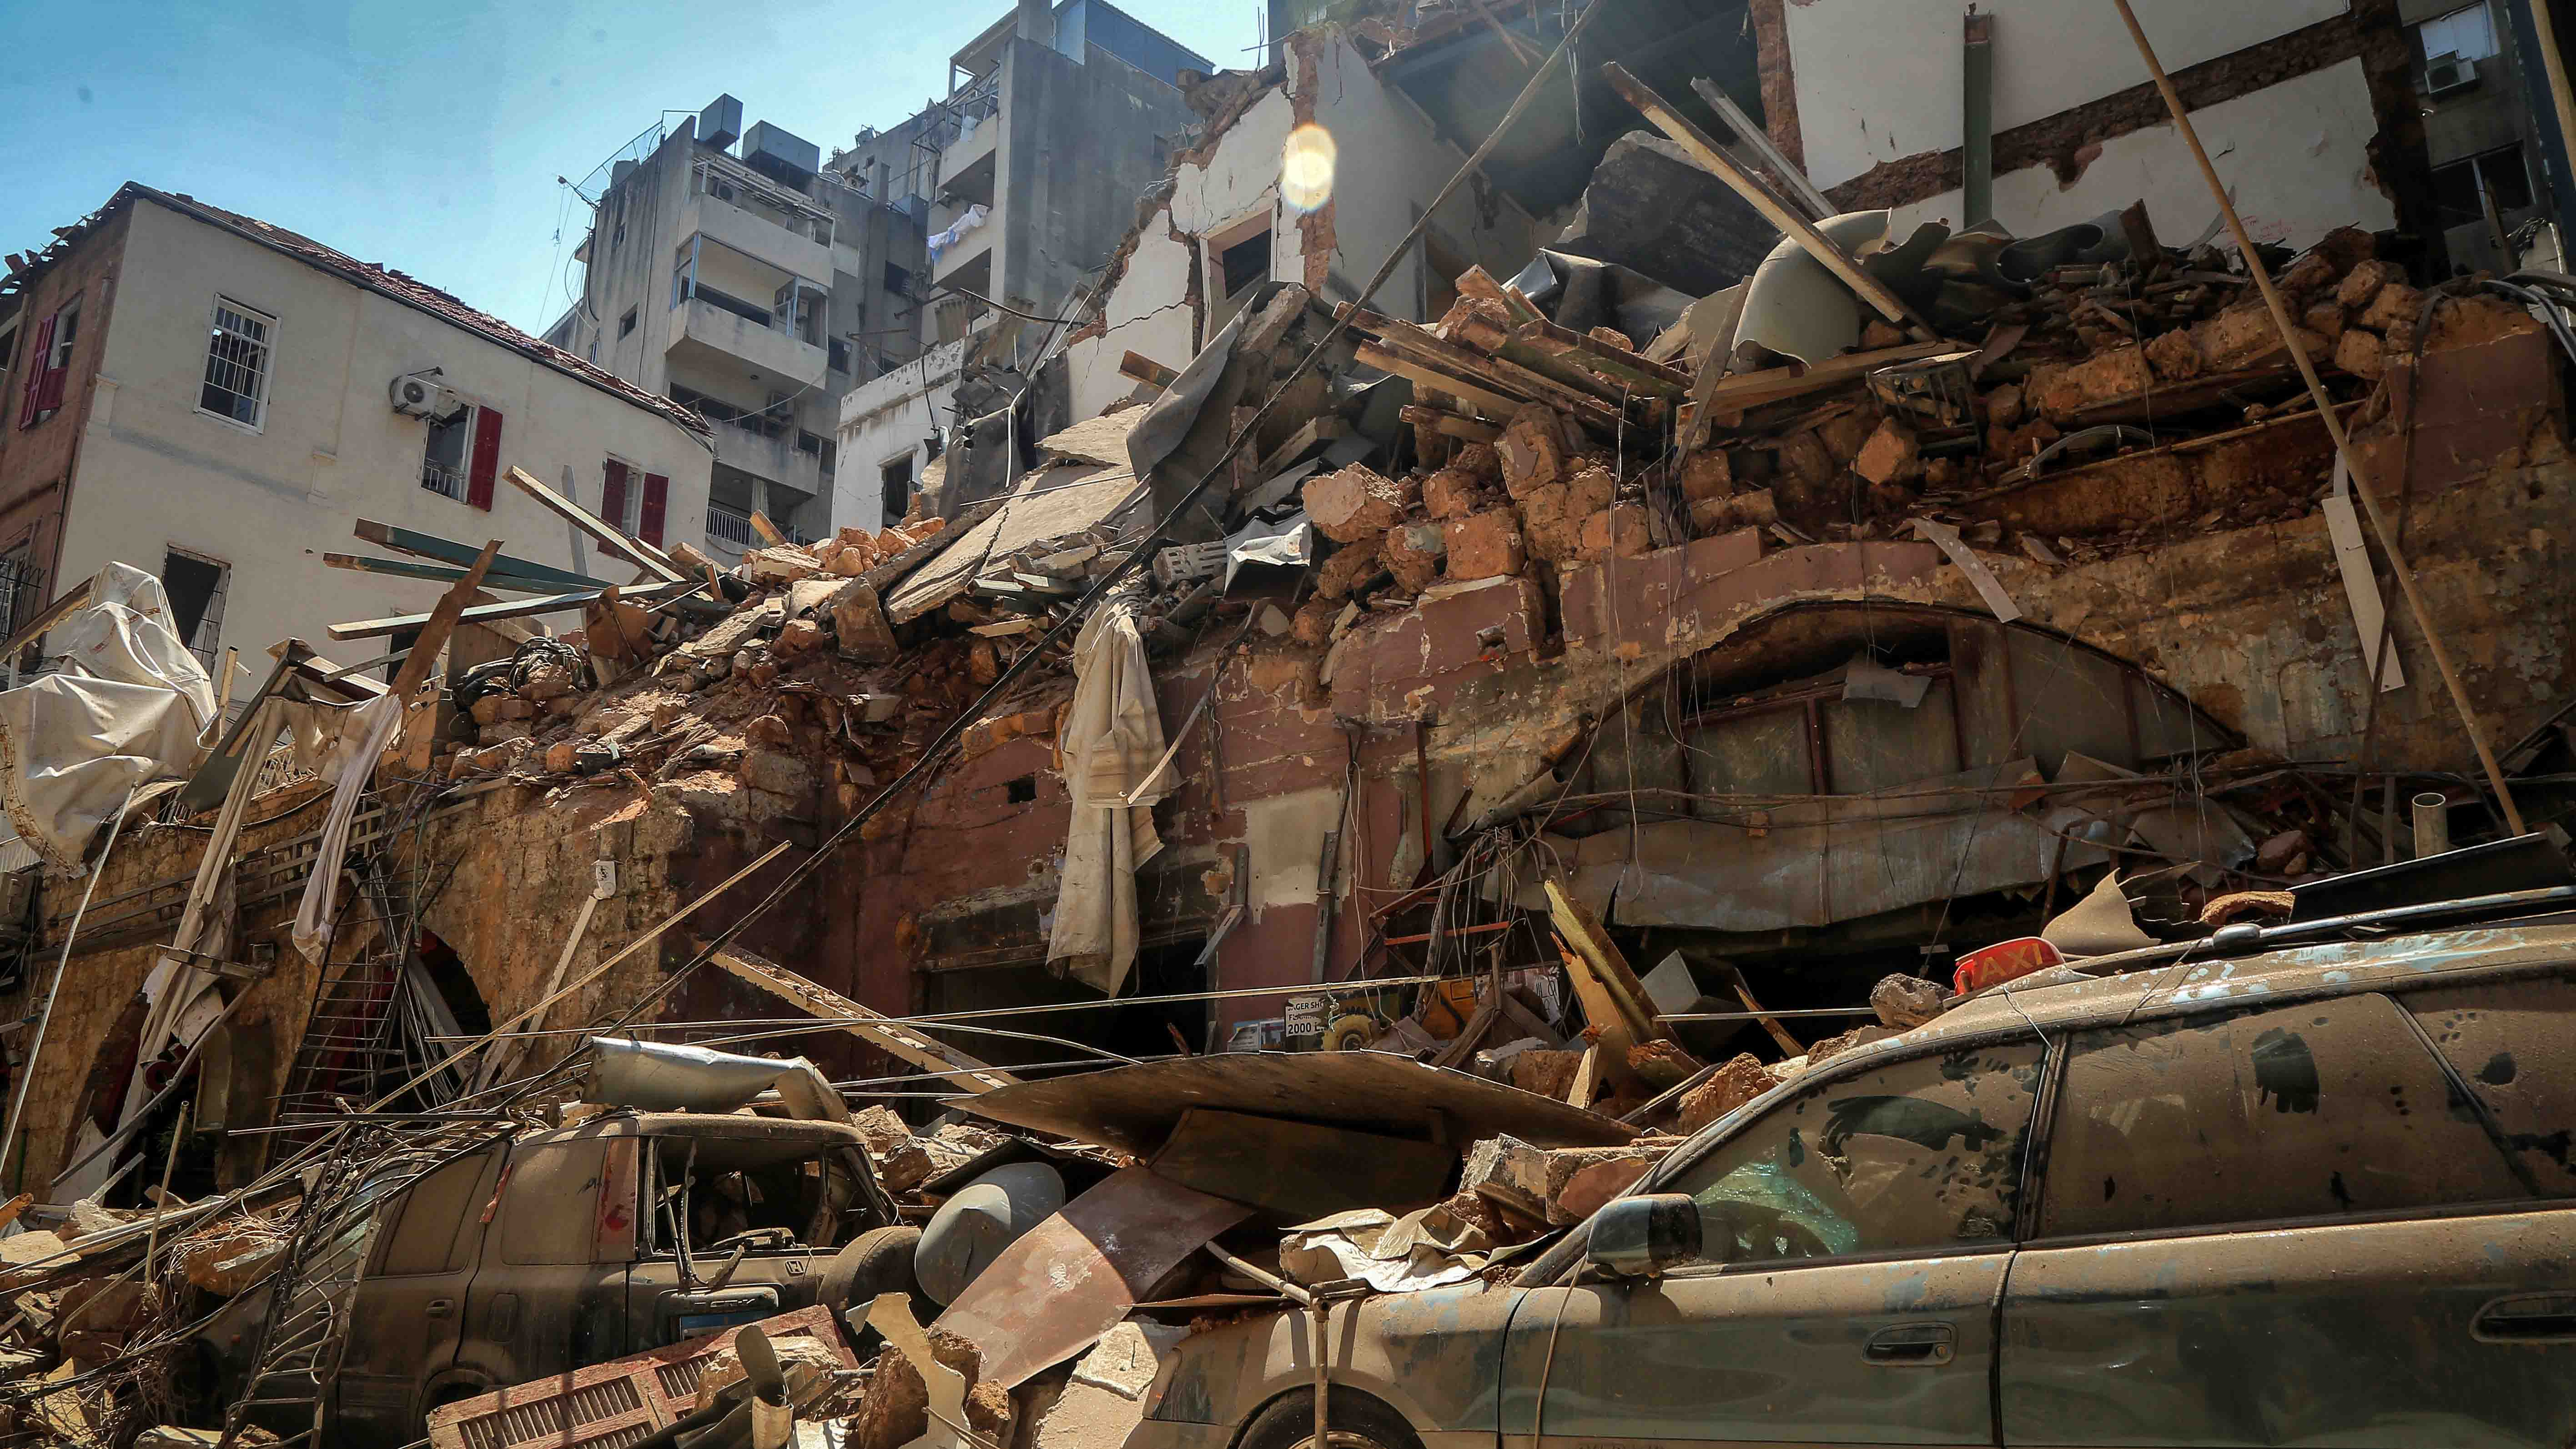 In a Horrific Instant, a Burst of Power That Ravaged Beirut